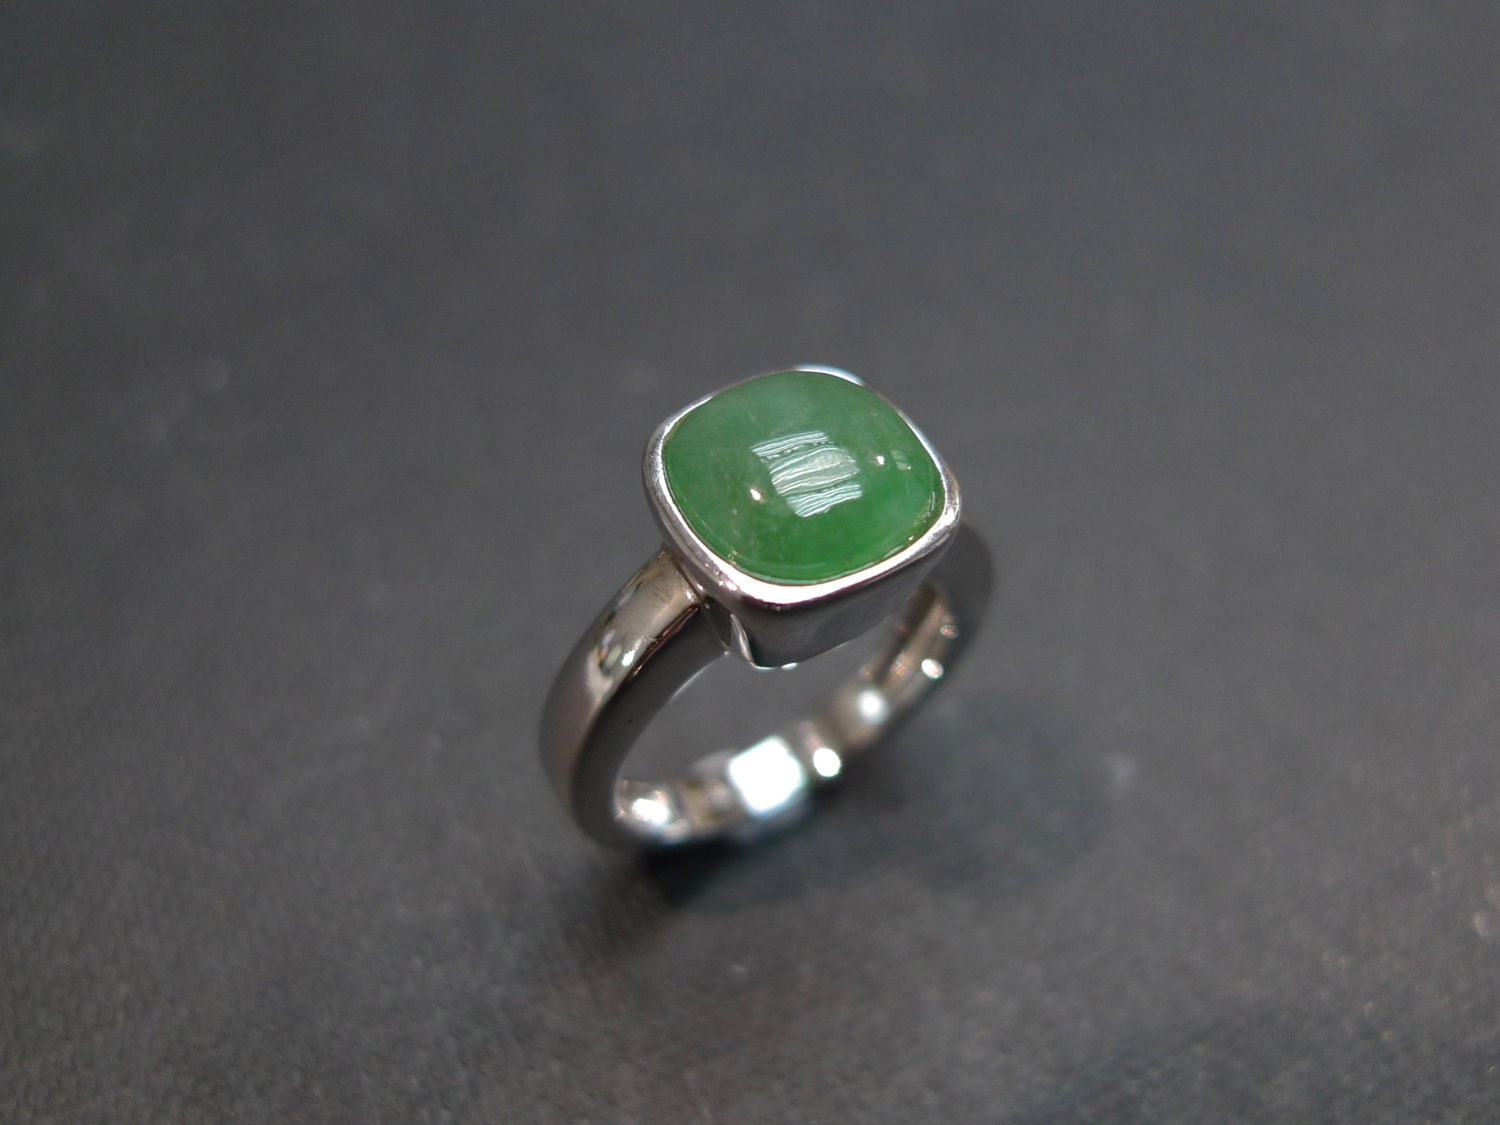 Jade Wedding Ring Etsy Your Place To Buy And Sell All Things Handmade